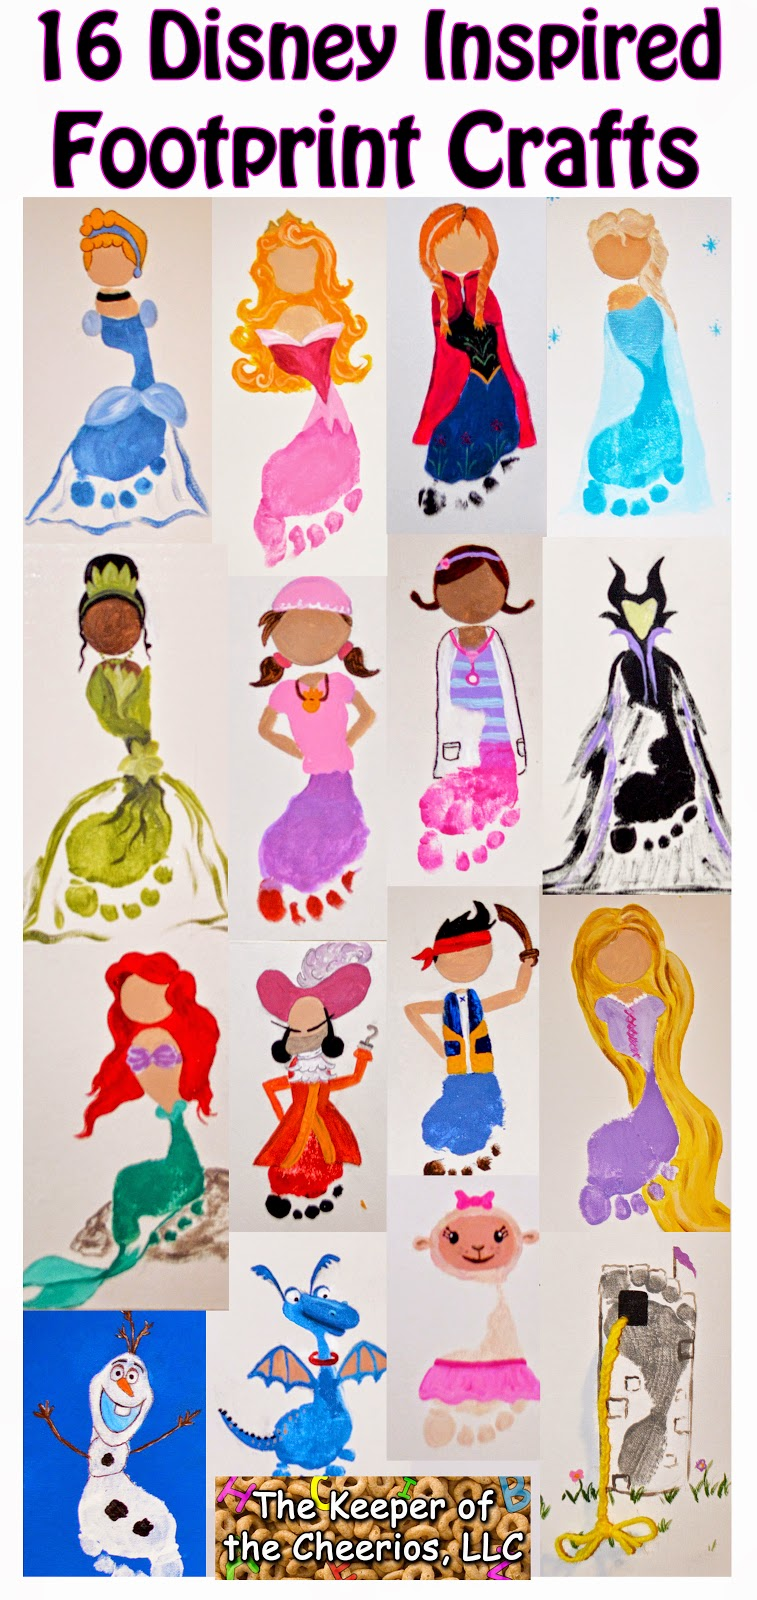 Disney Princess and Footprints Crafts